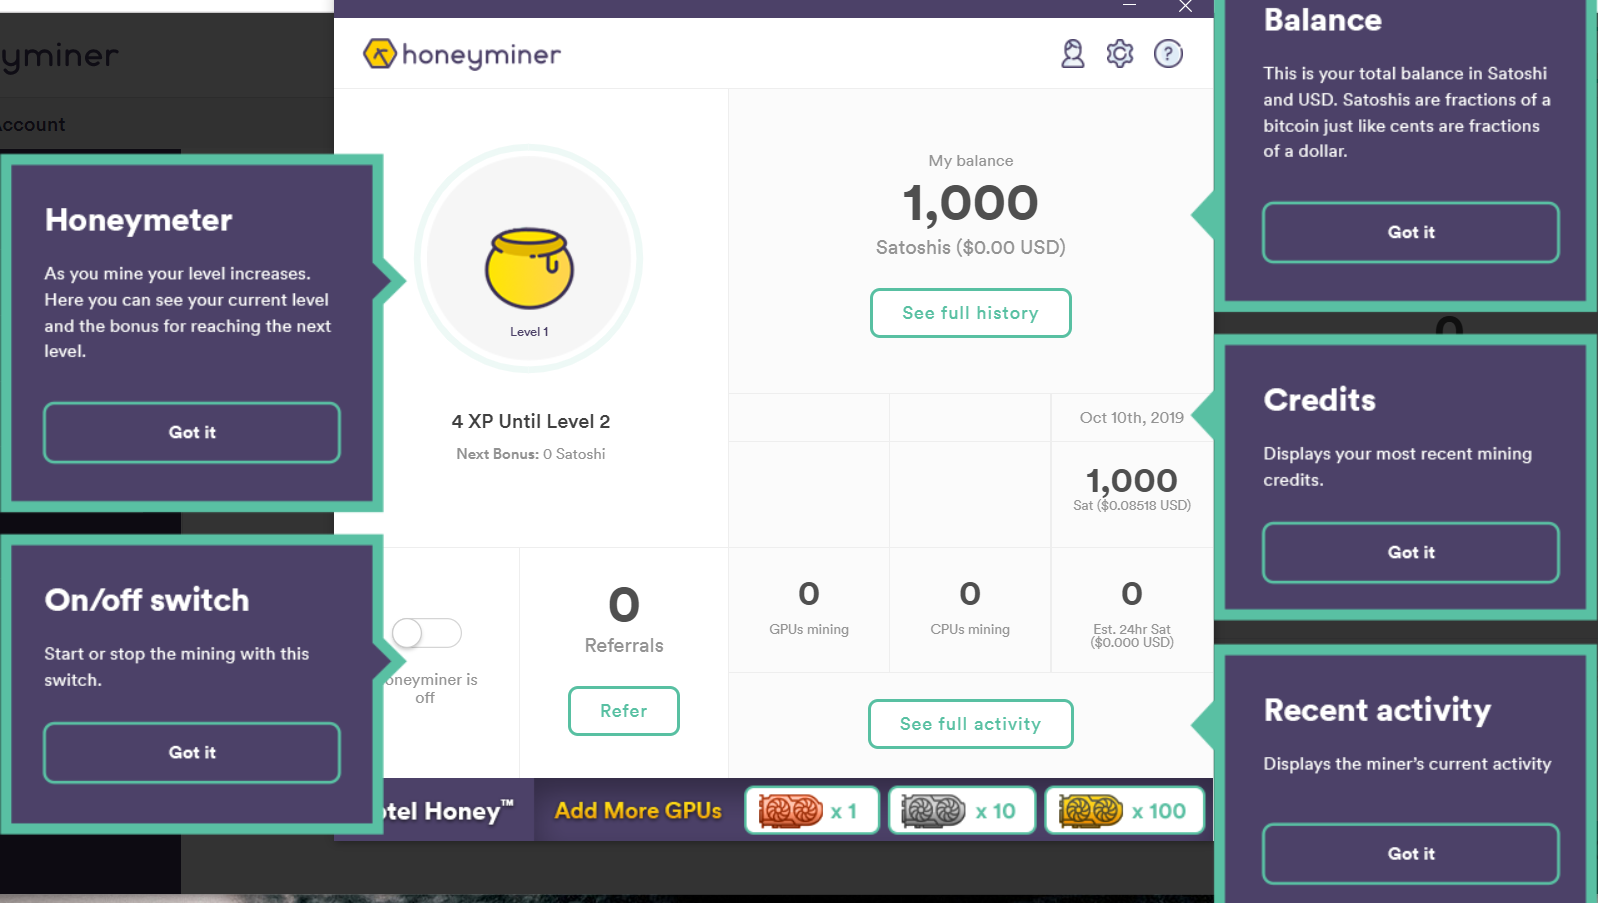 Honeyminer Review 2020: Best Cryptocurrency Mining Program?